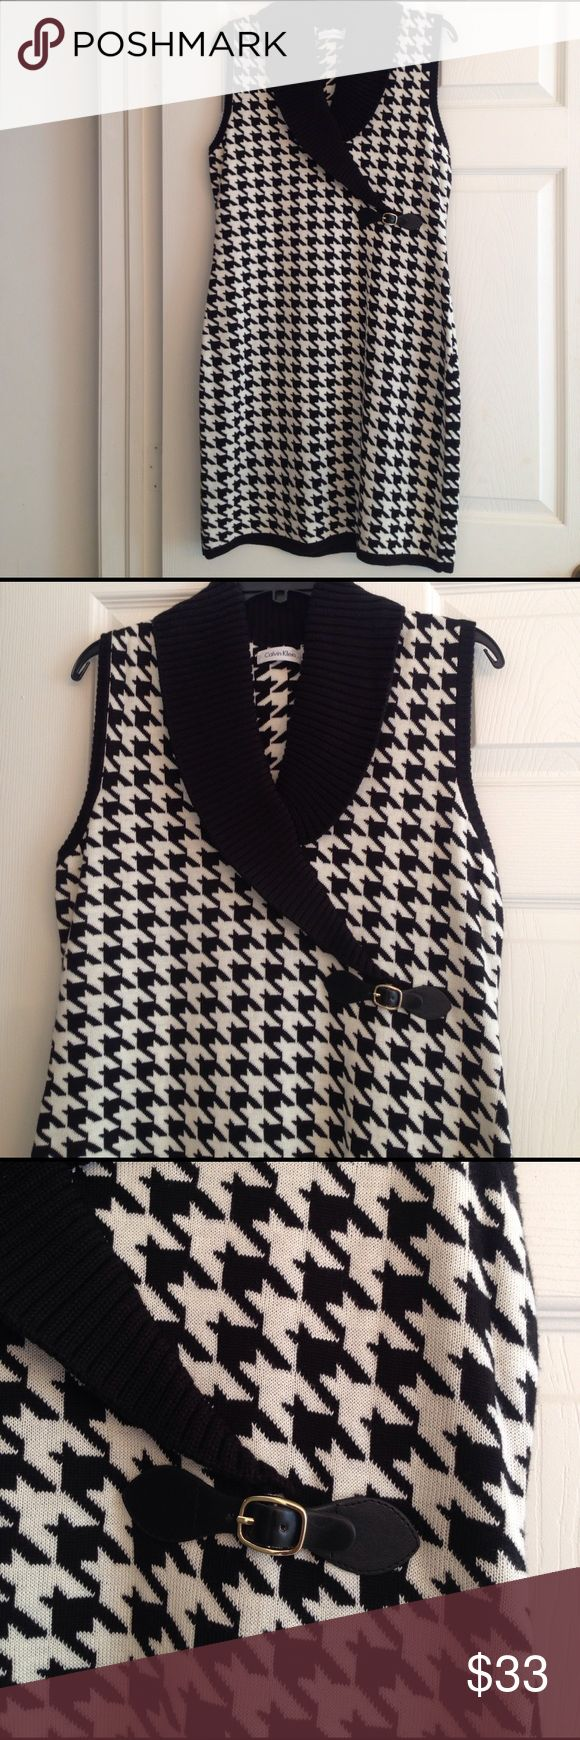 CALVIN KLEIN HOUNDSTOOTH KNIT DRESS Beautiful easy to wear dress in black and white houndstooth from Calvin Klein. Simply pullover. In excellent condition. No flaws. Calvin Klein Dresses